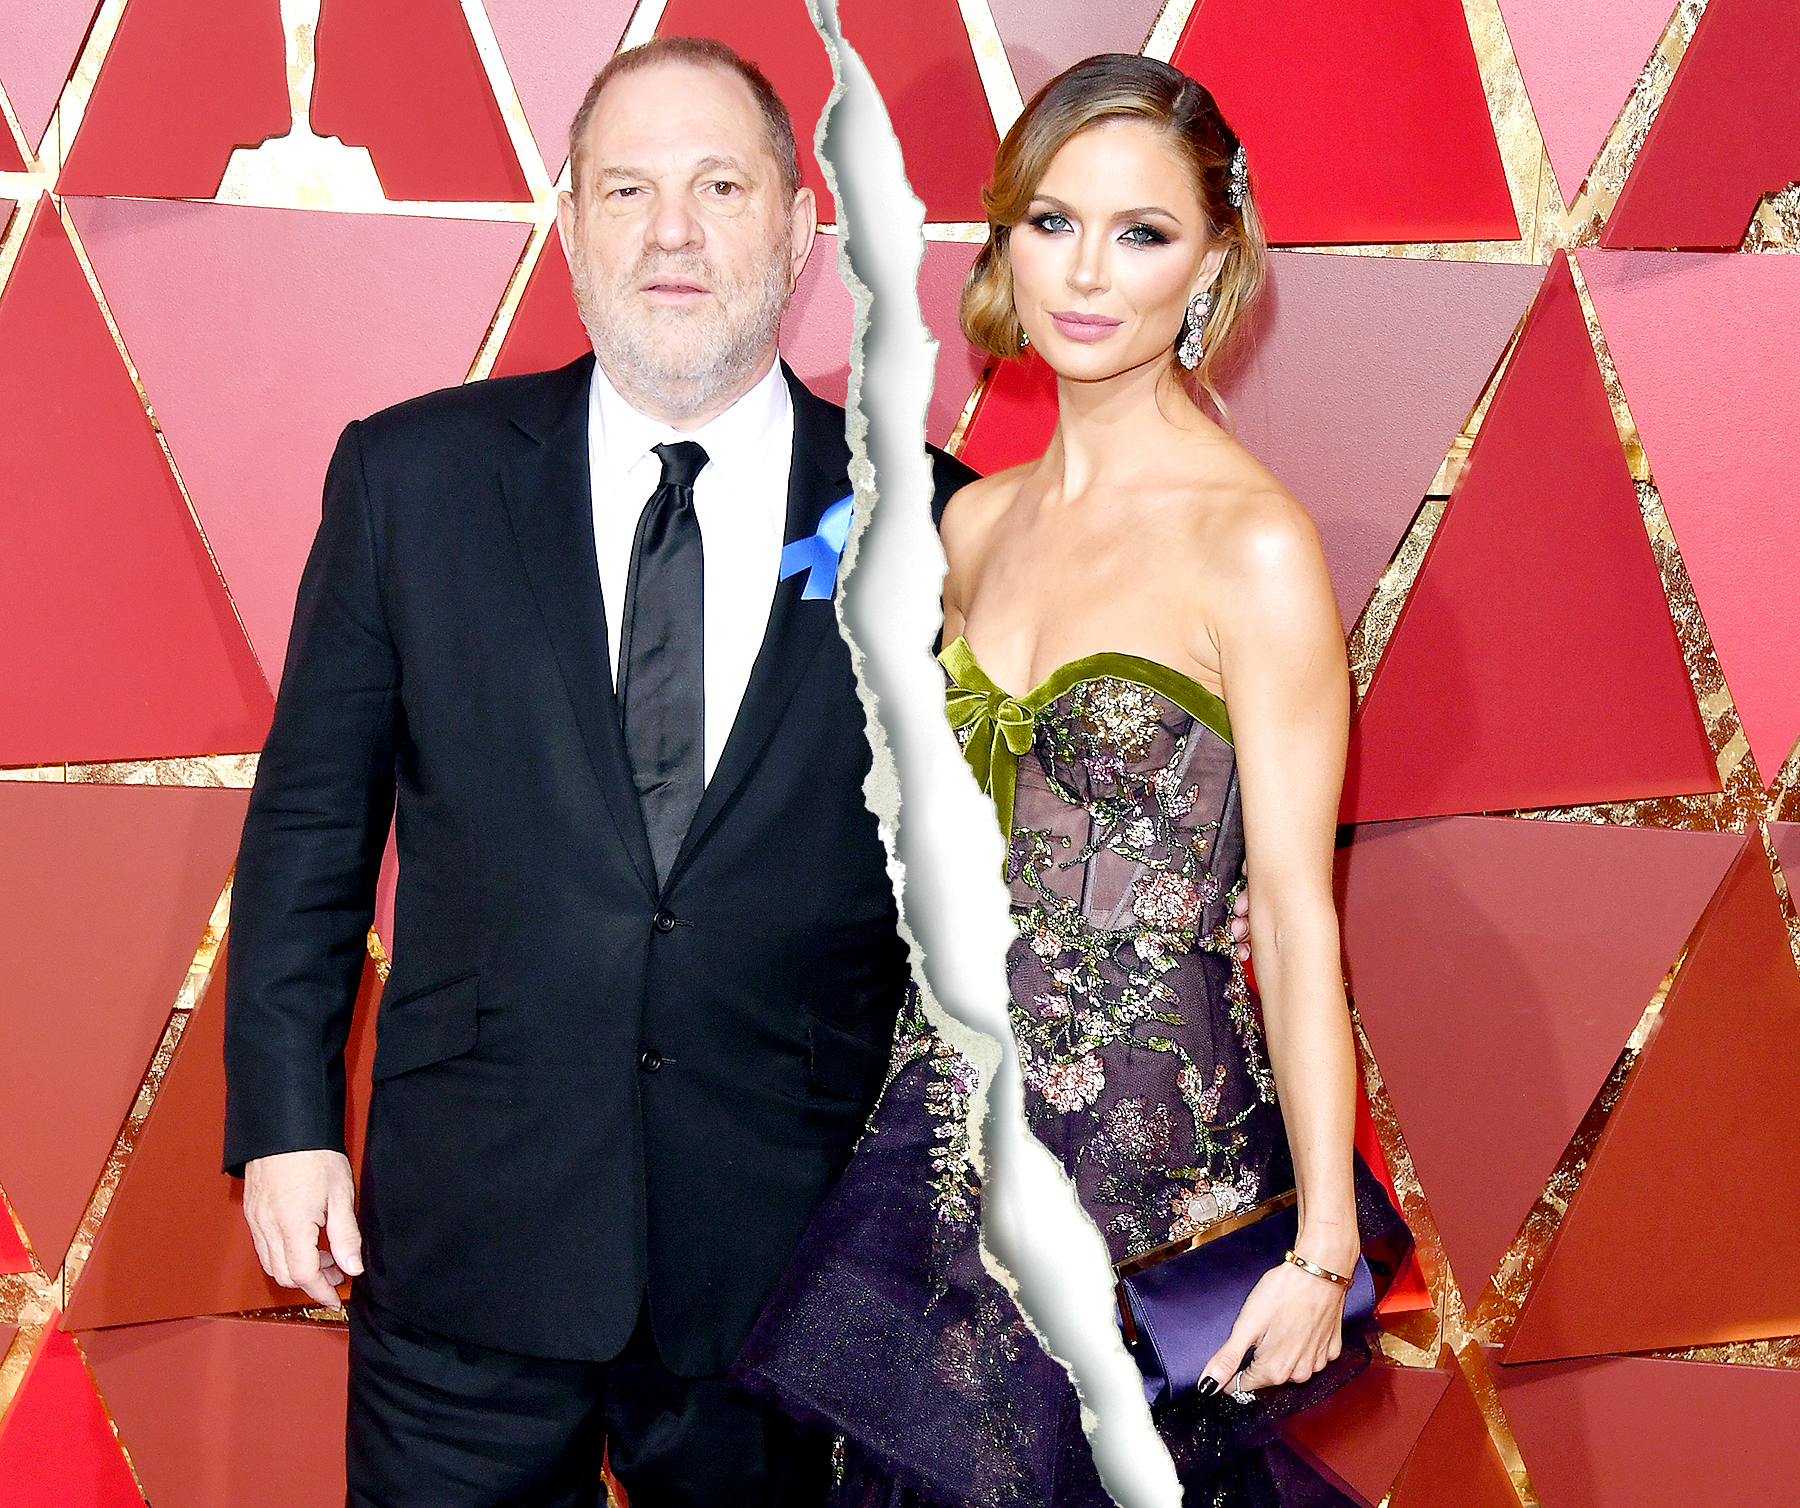 Harvey Weinstein and Georgina Chapman attend the 89th Annual Academy Awards at Hollywood & Highland Center on February 26, 2017 in Hollywood, California.